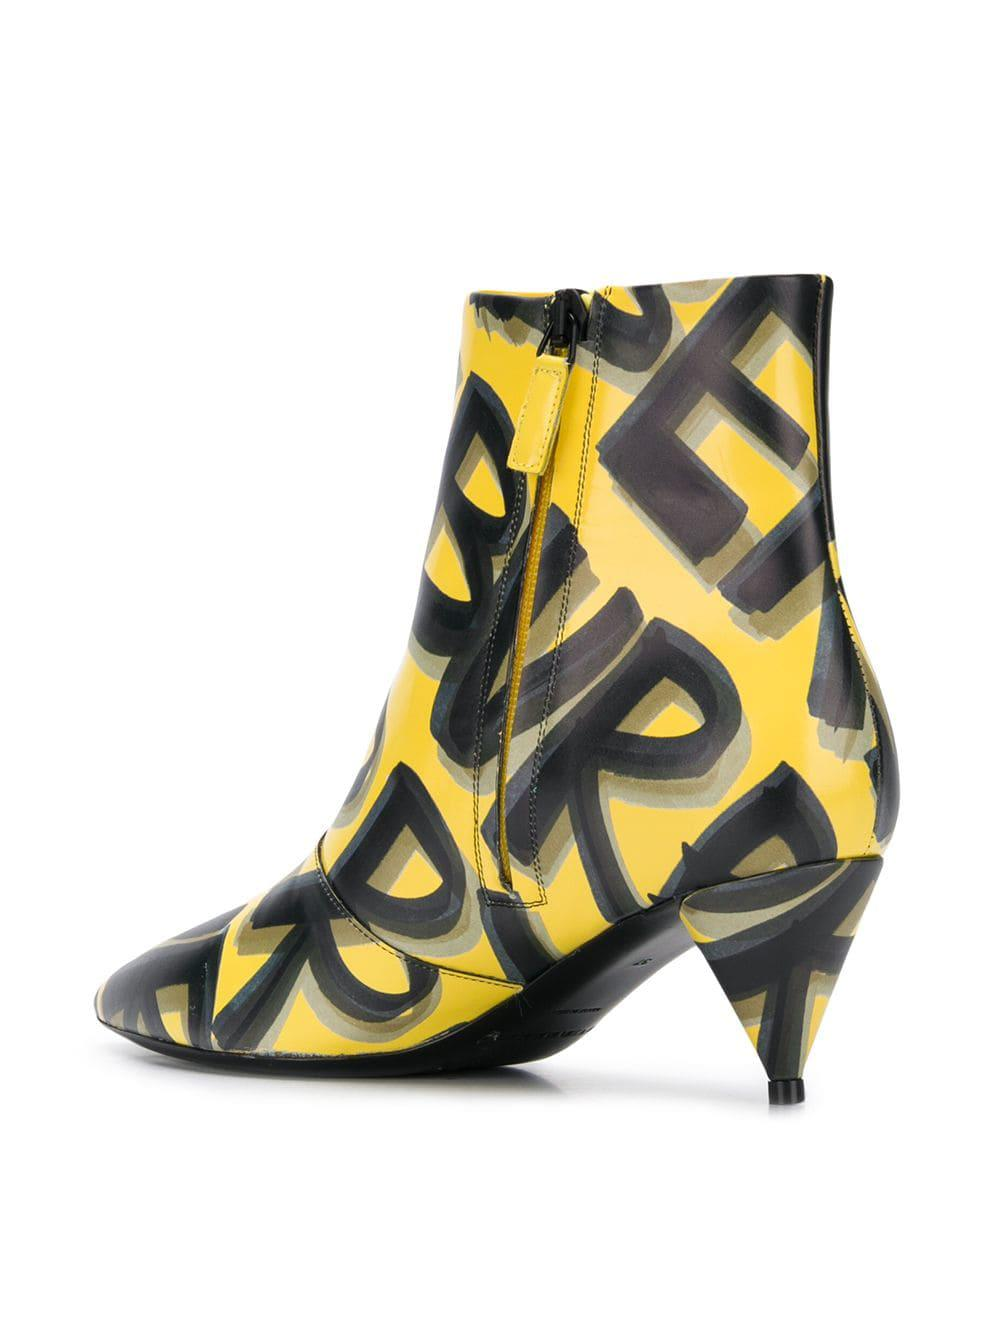 Burberry Graffiti Print Leather Ankle Boots